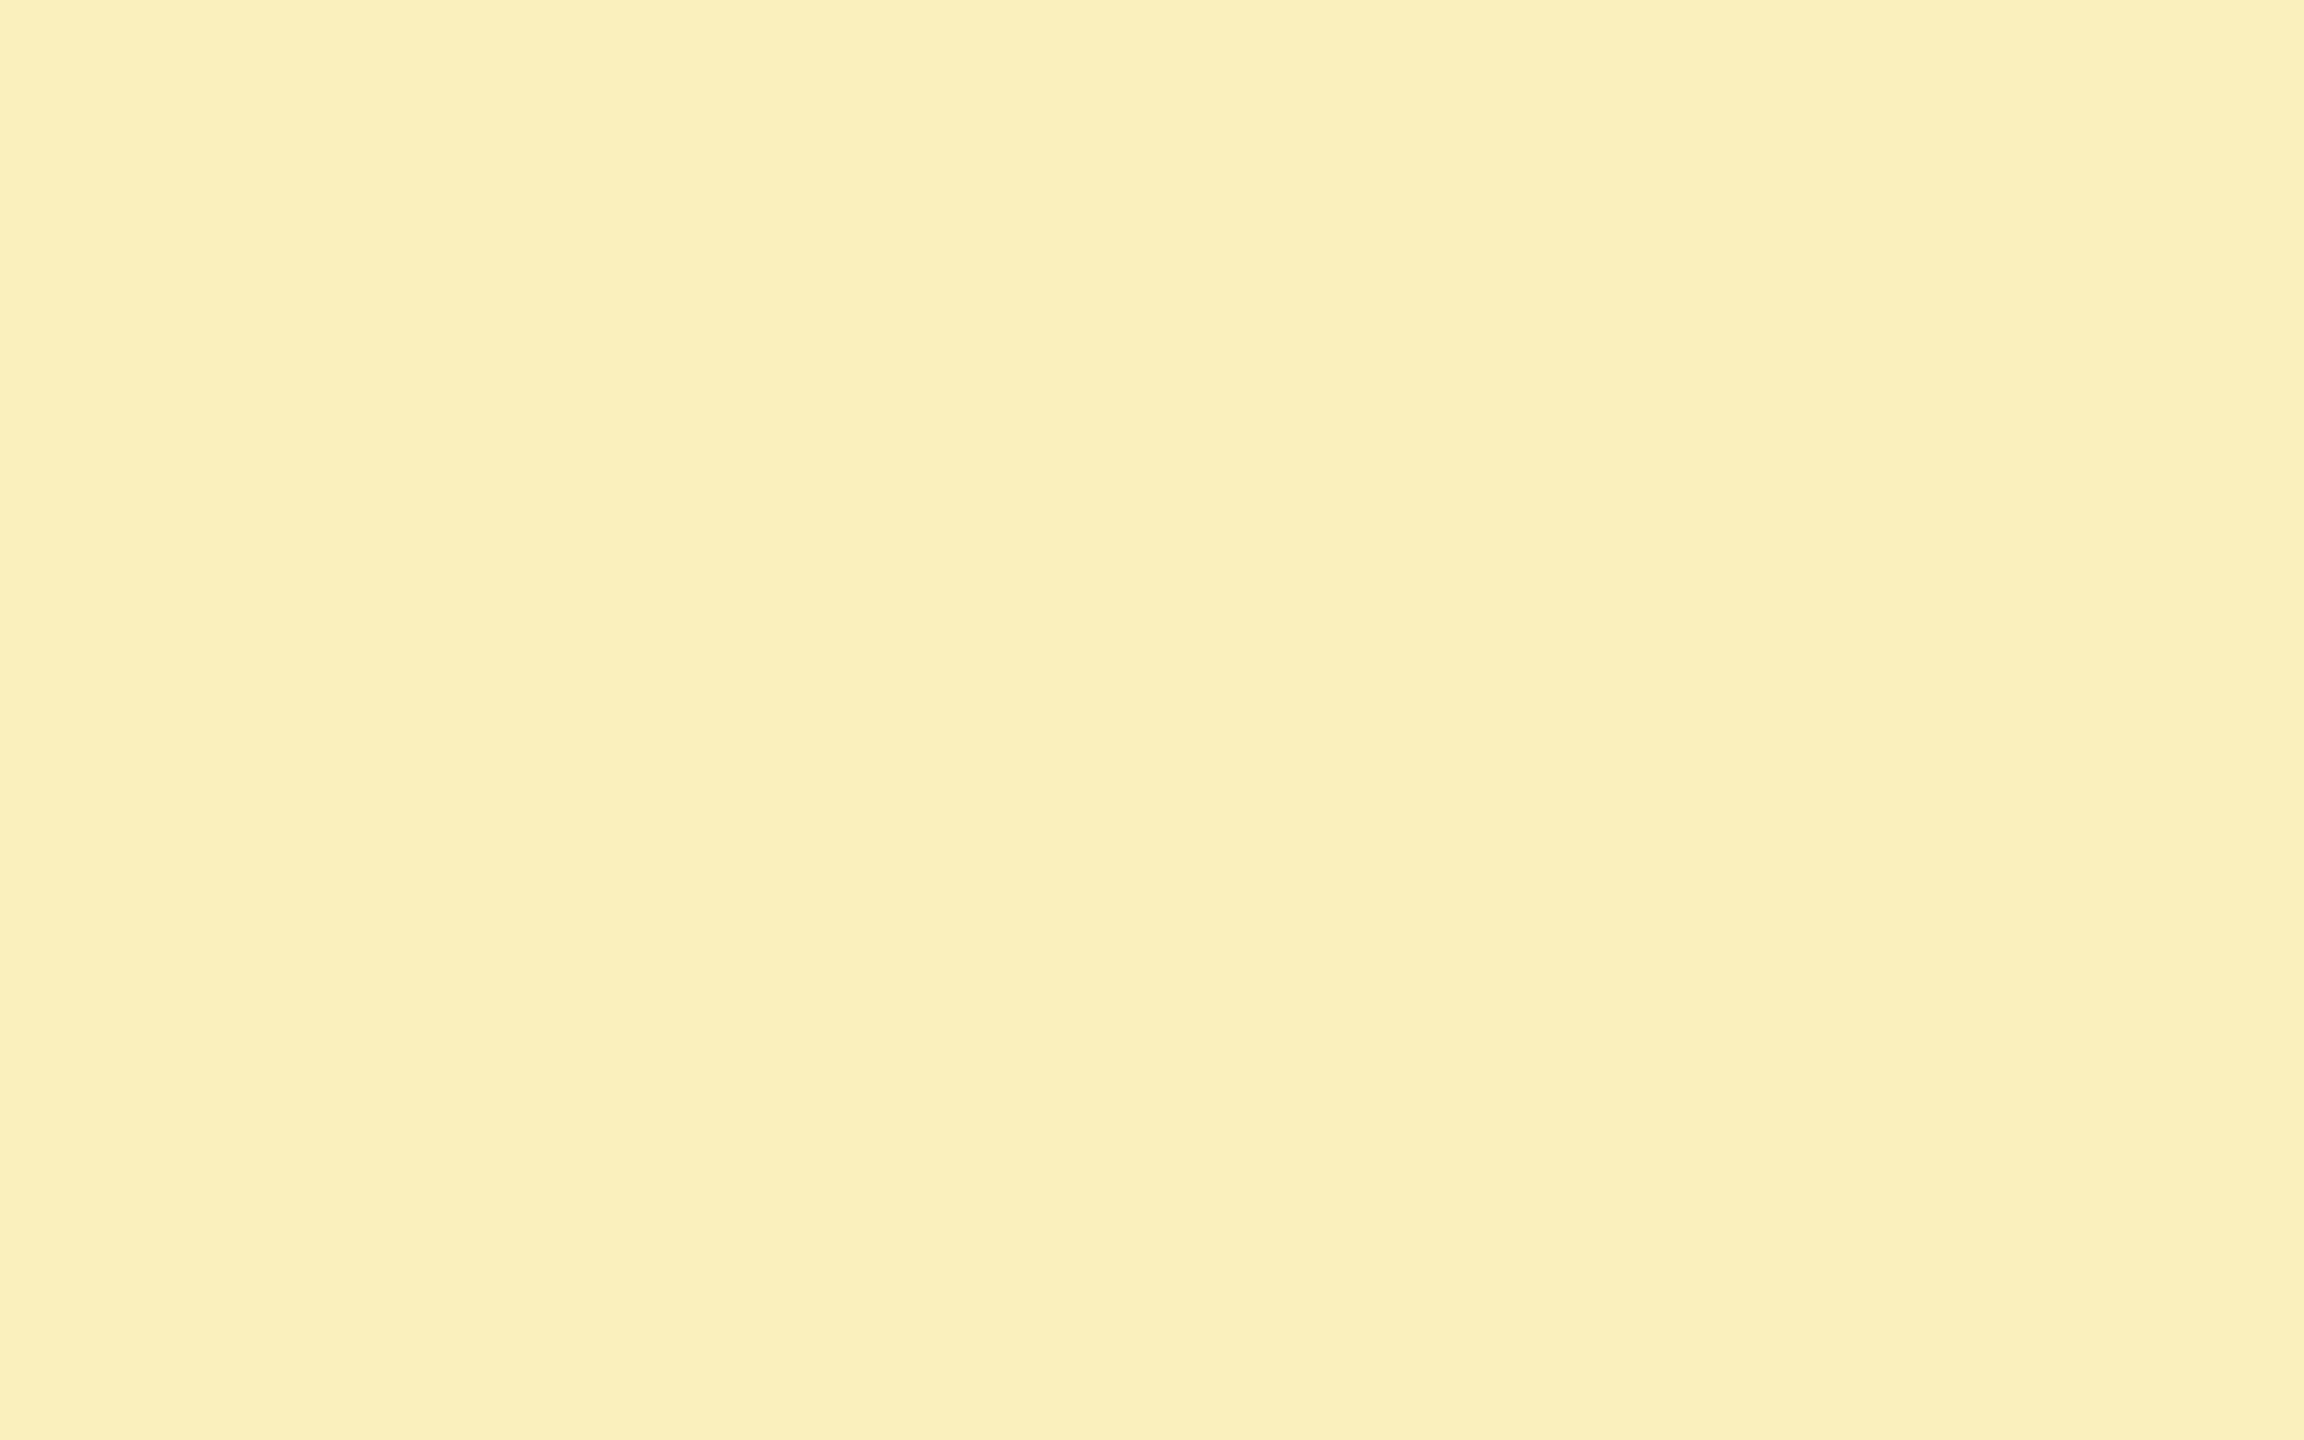 2304x1440 Blond Solid Color Background